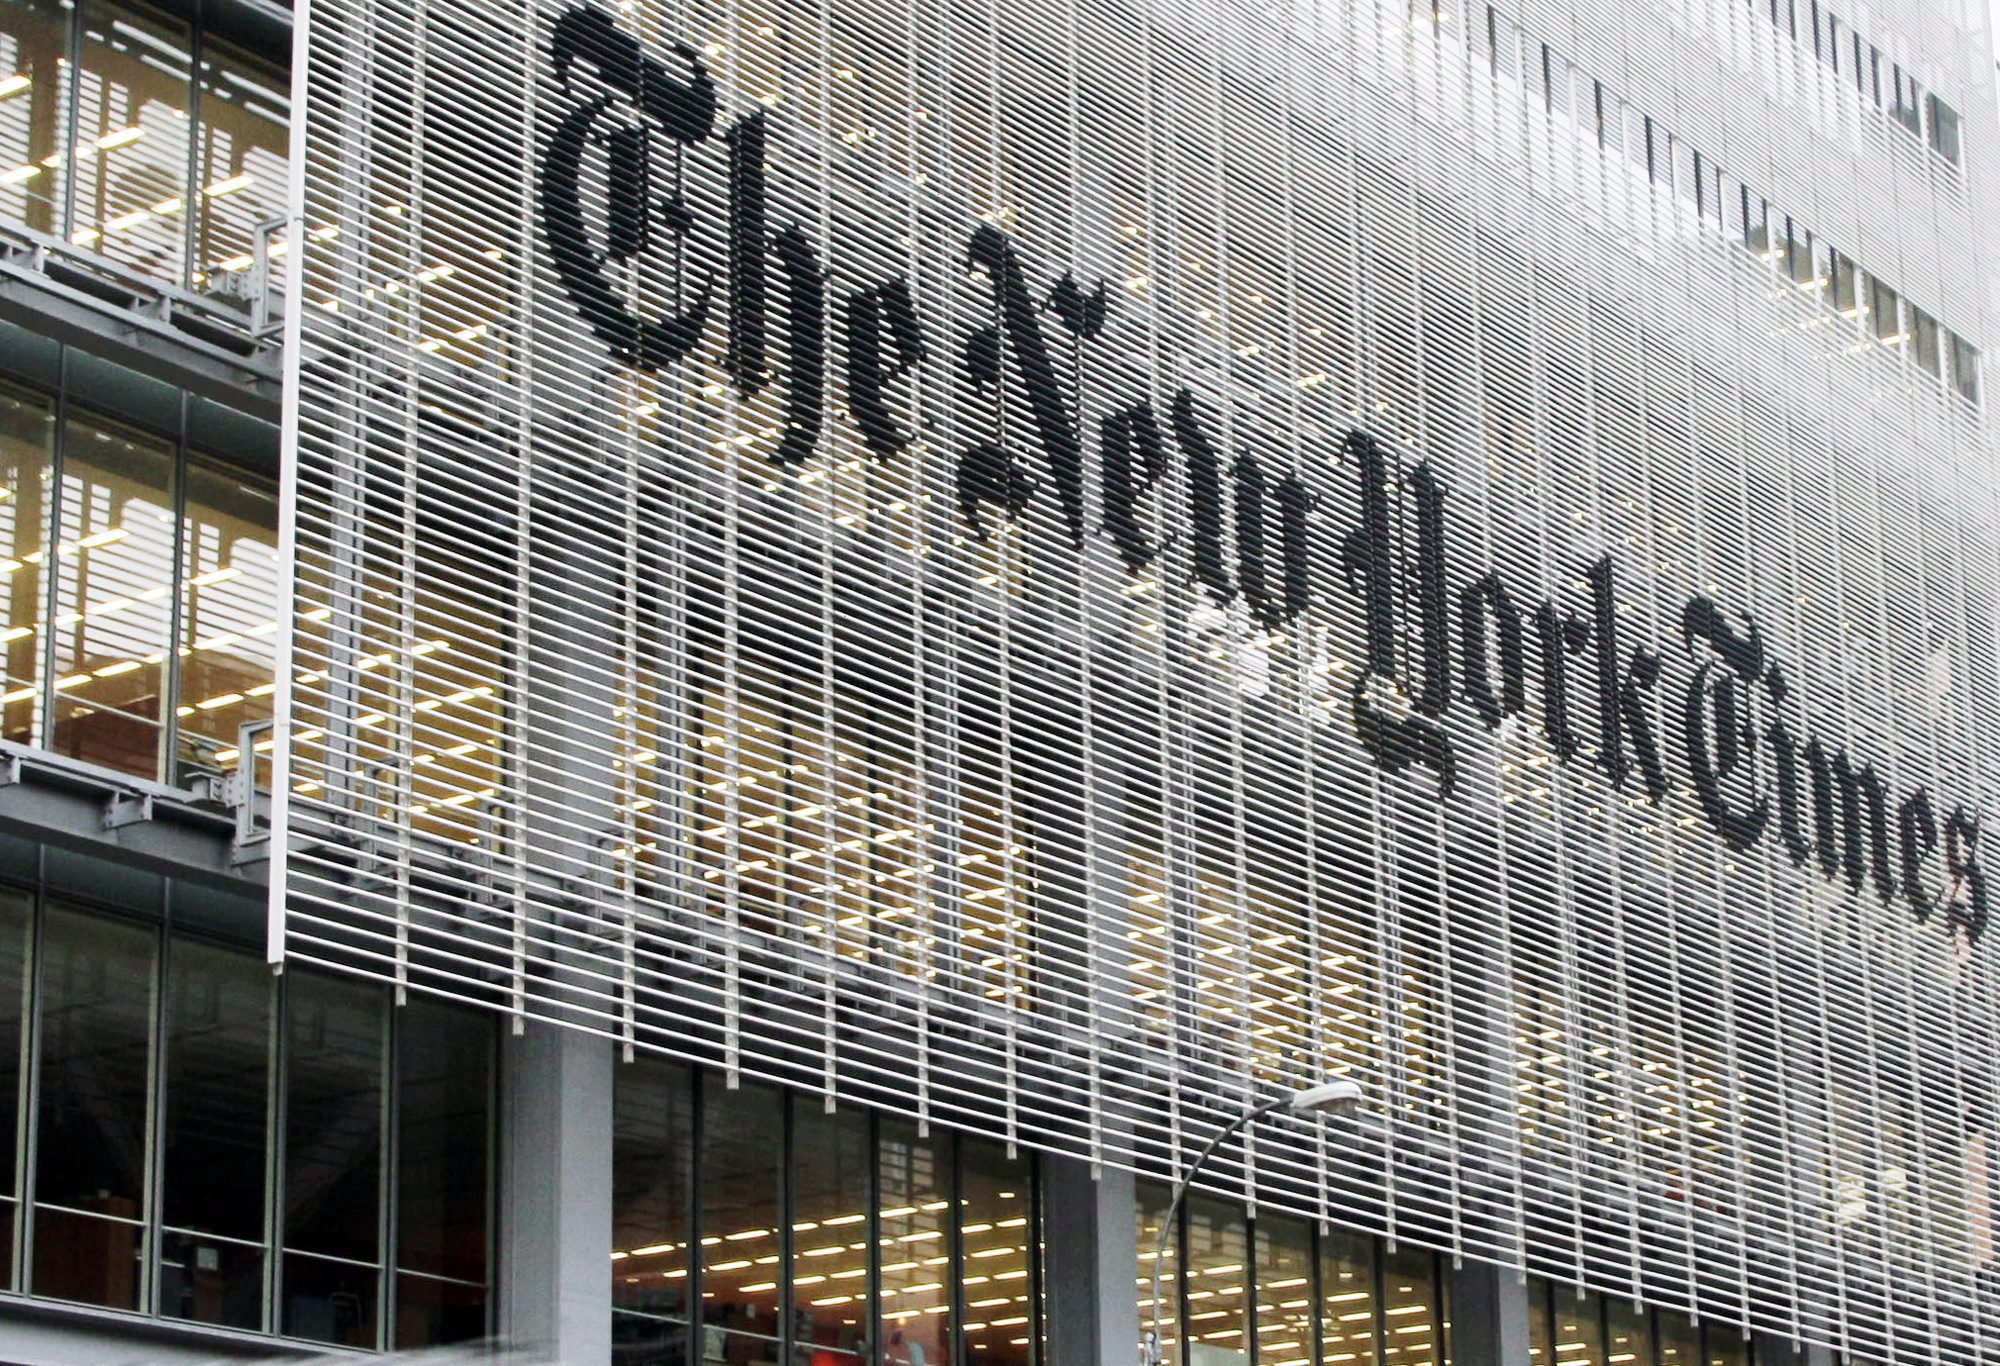 Trump says he met with New York Times publisher, discussed fake news